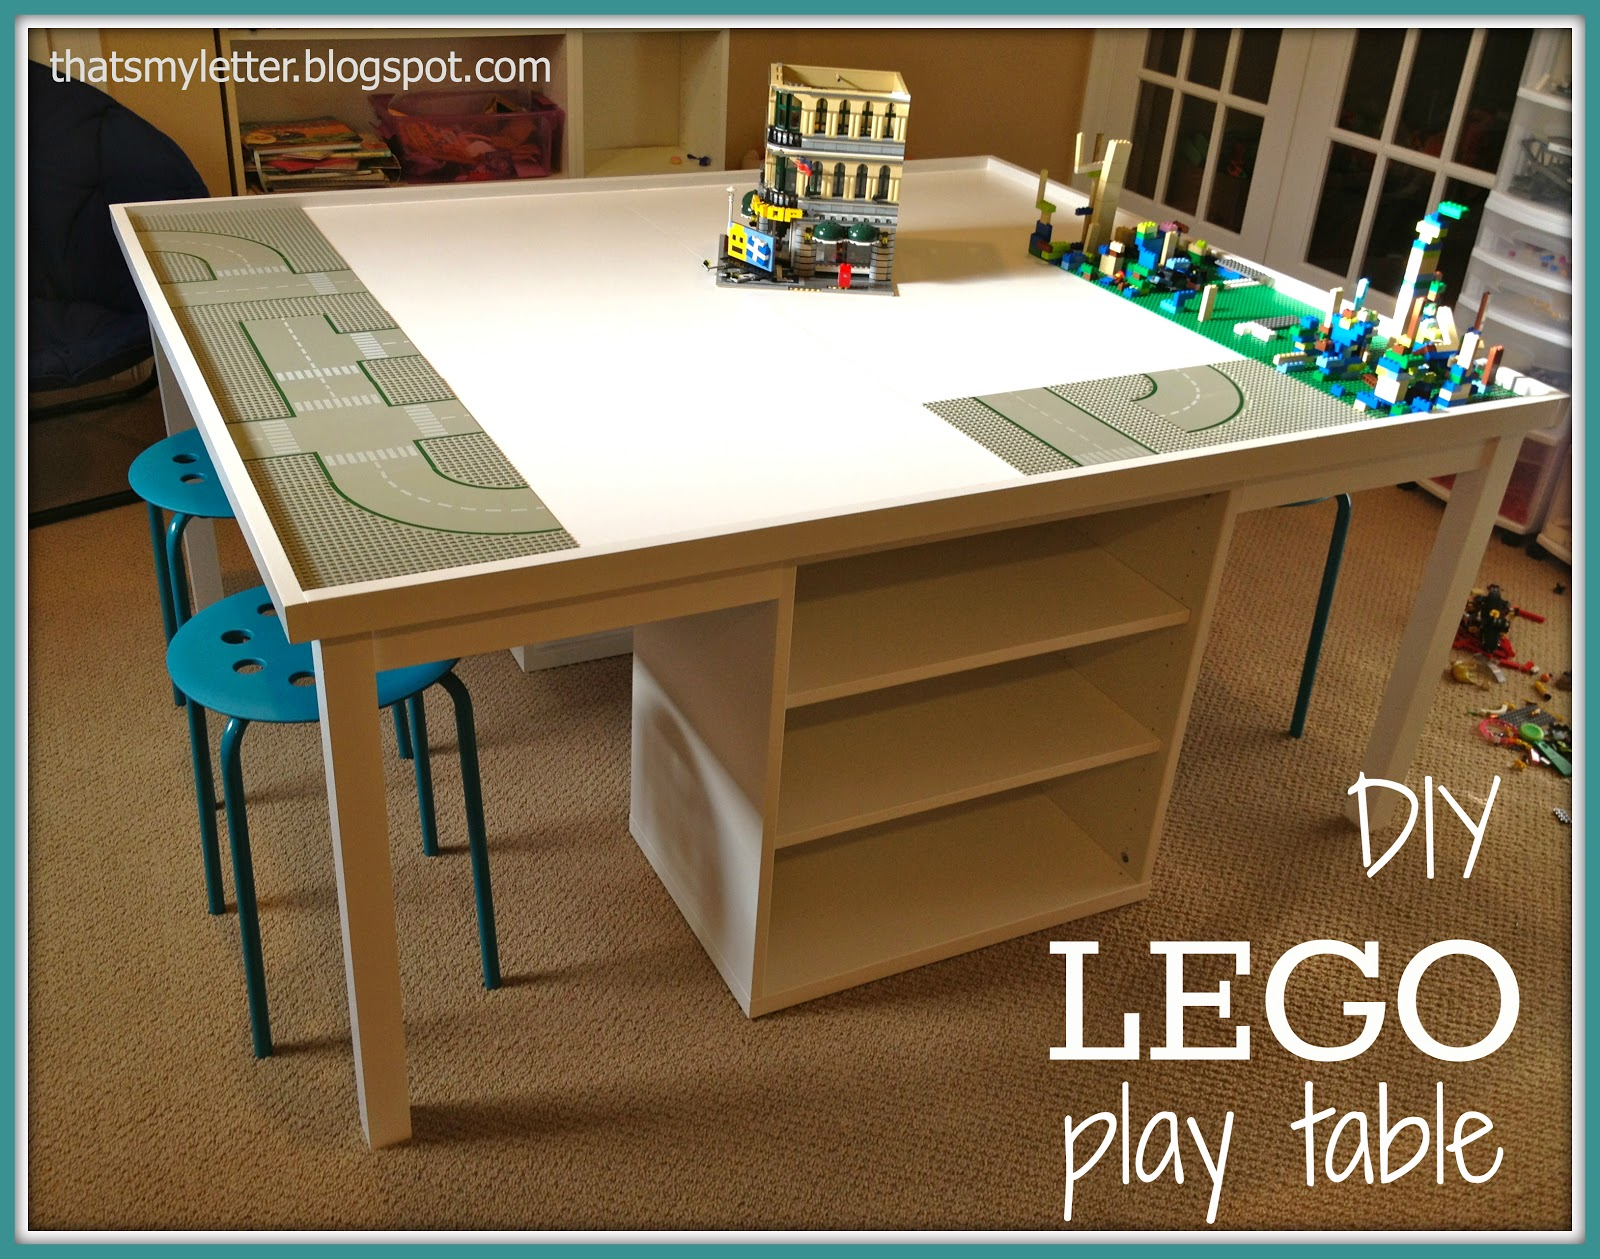 giant lego play table space designed for storage and seating area: